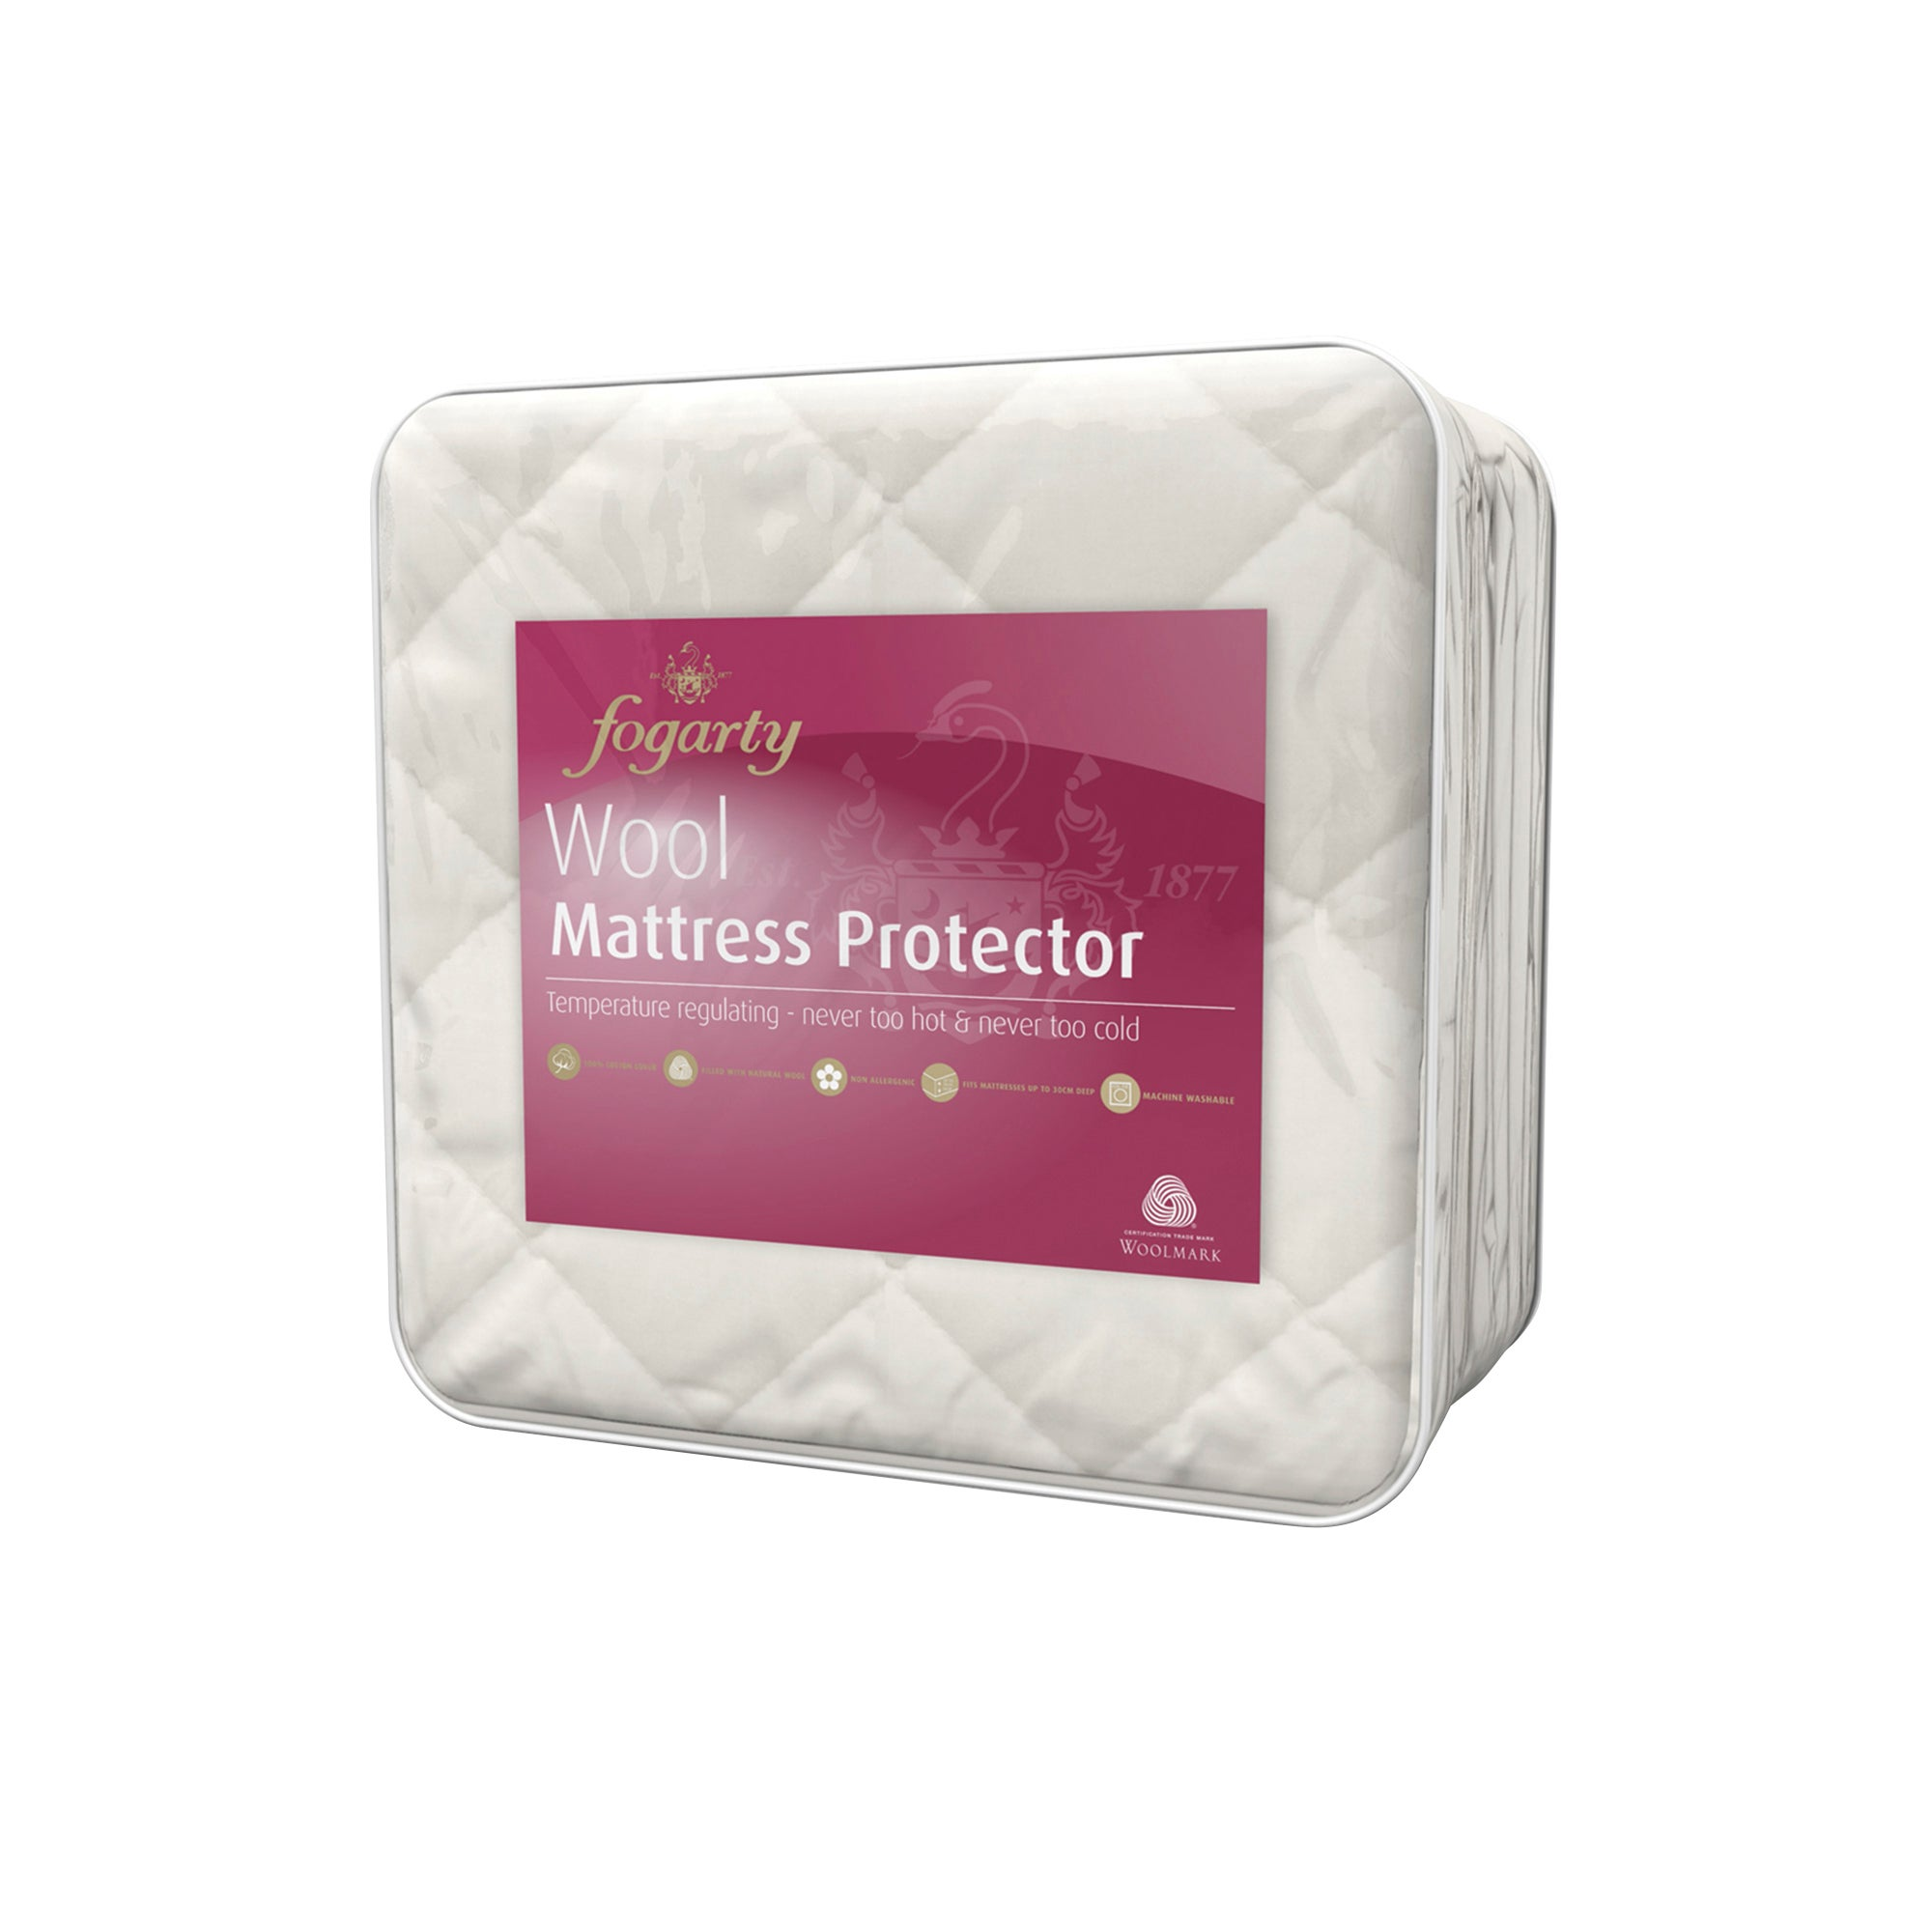 Fogarty Wool Mattress Protector